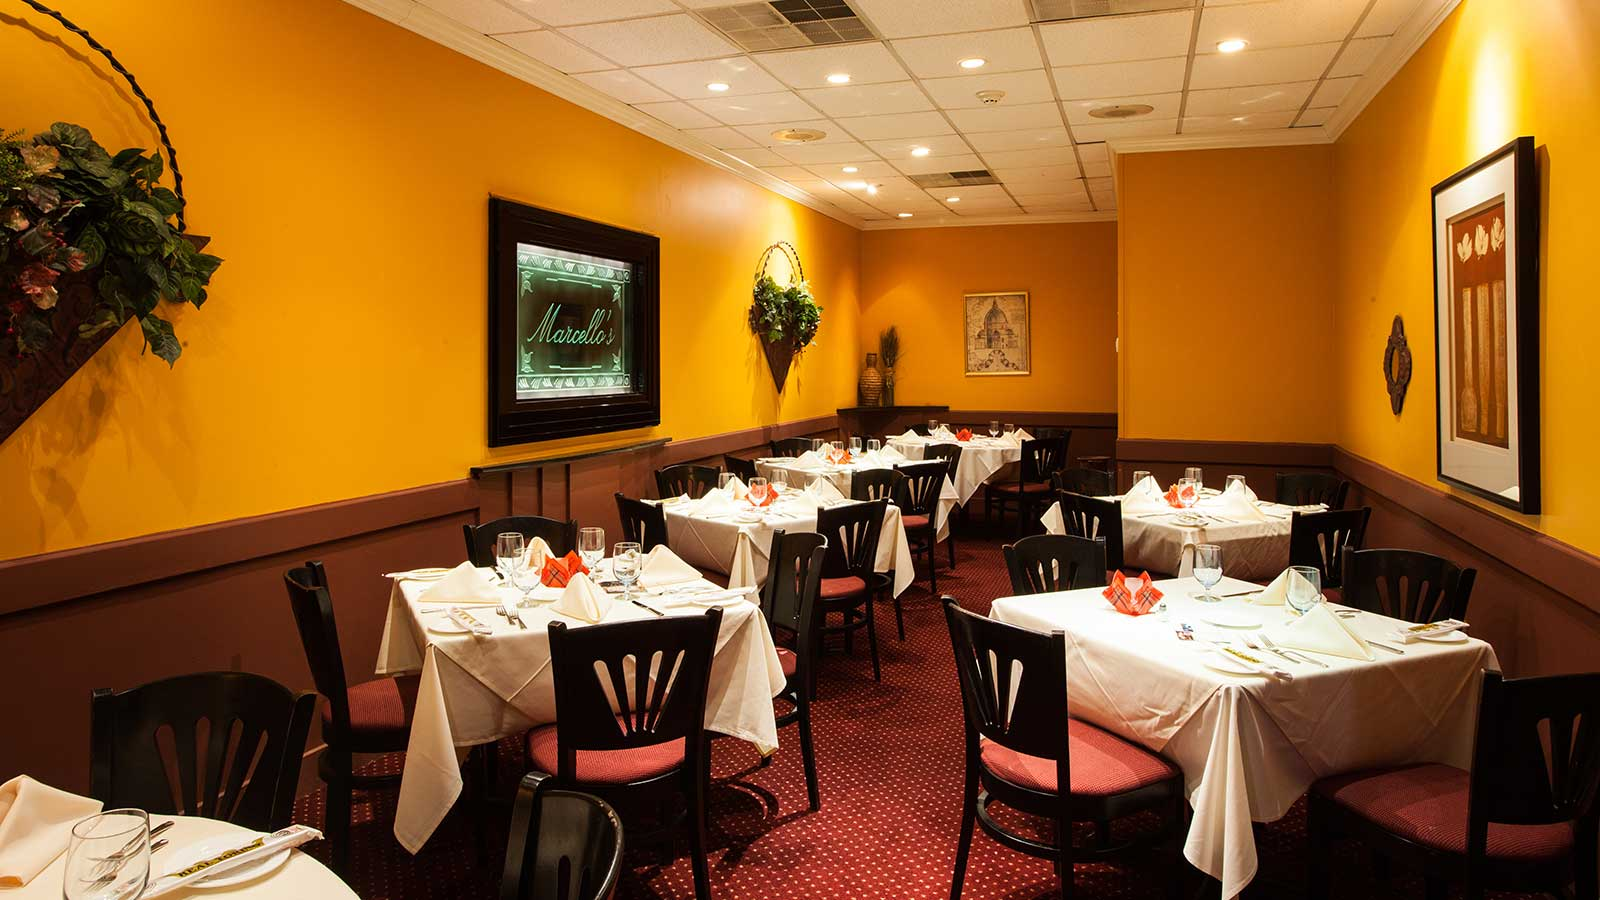 Marcellos Restaurant in Suffern NY